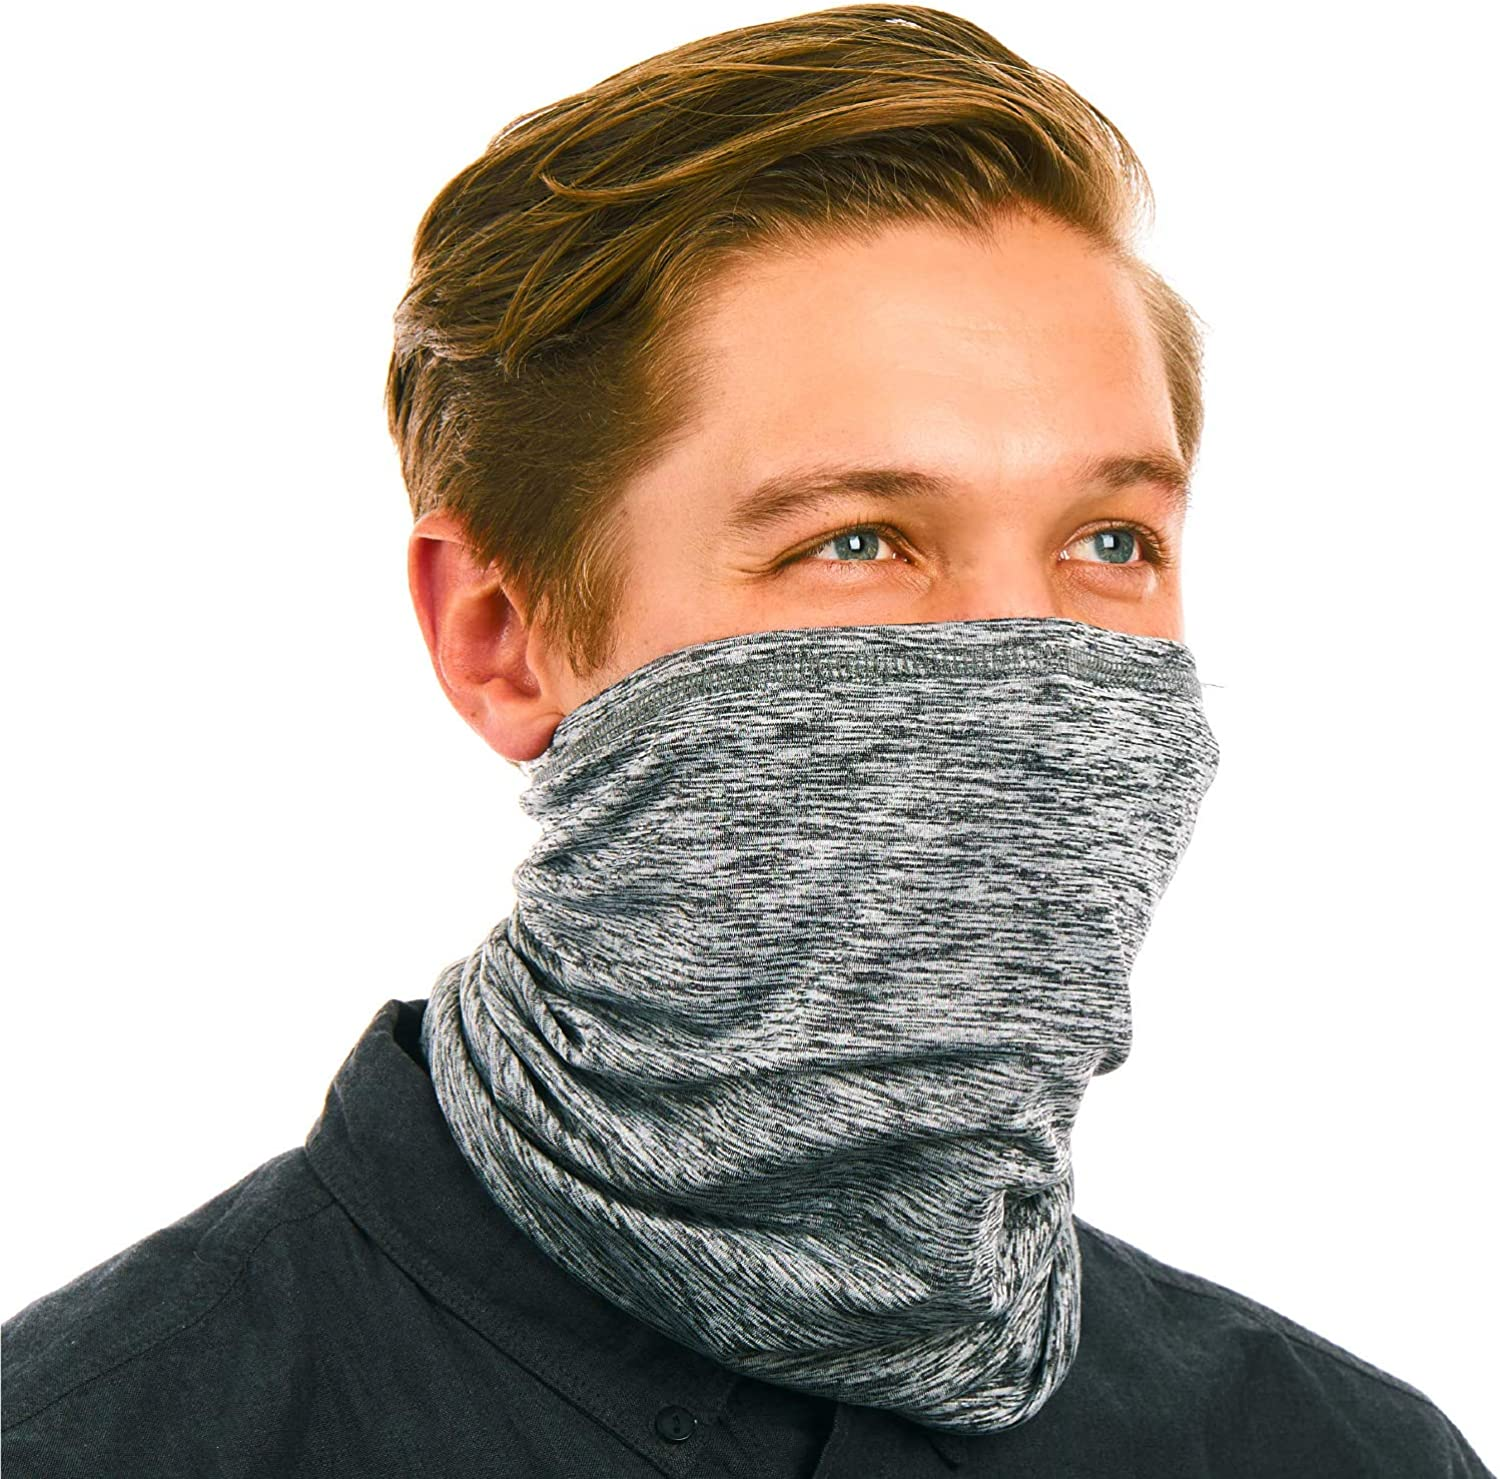 Respi-Gaiter, Cooling Washable Neck Gaiter Face Cover with 2 Removable Face Mask Filters and UV Protection - Cools When Wet